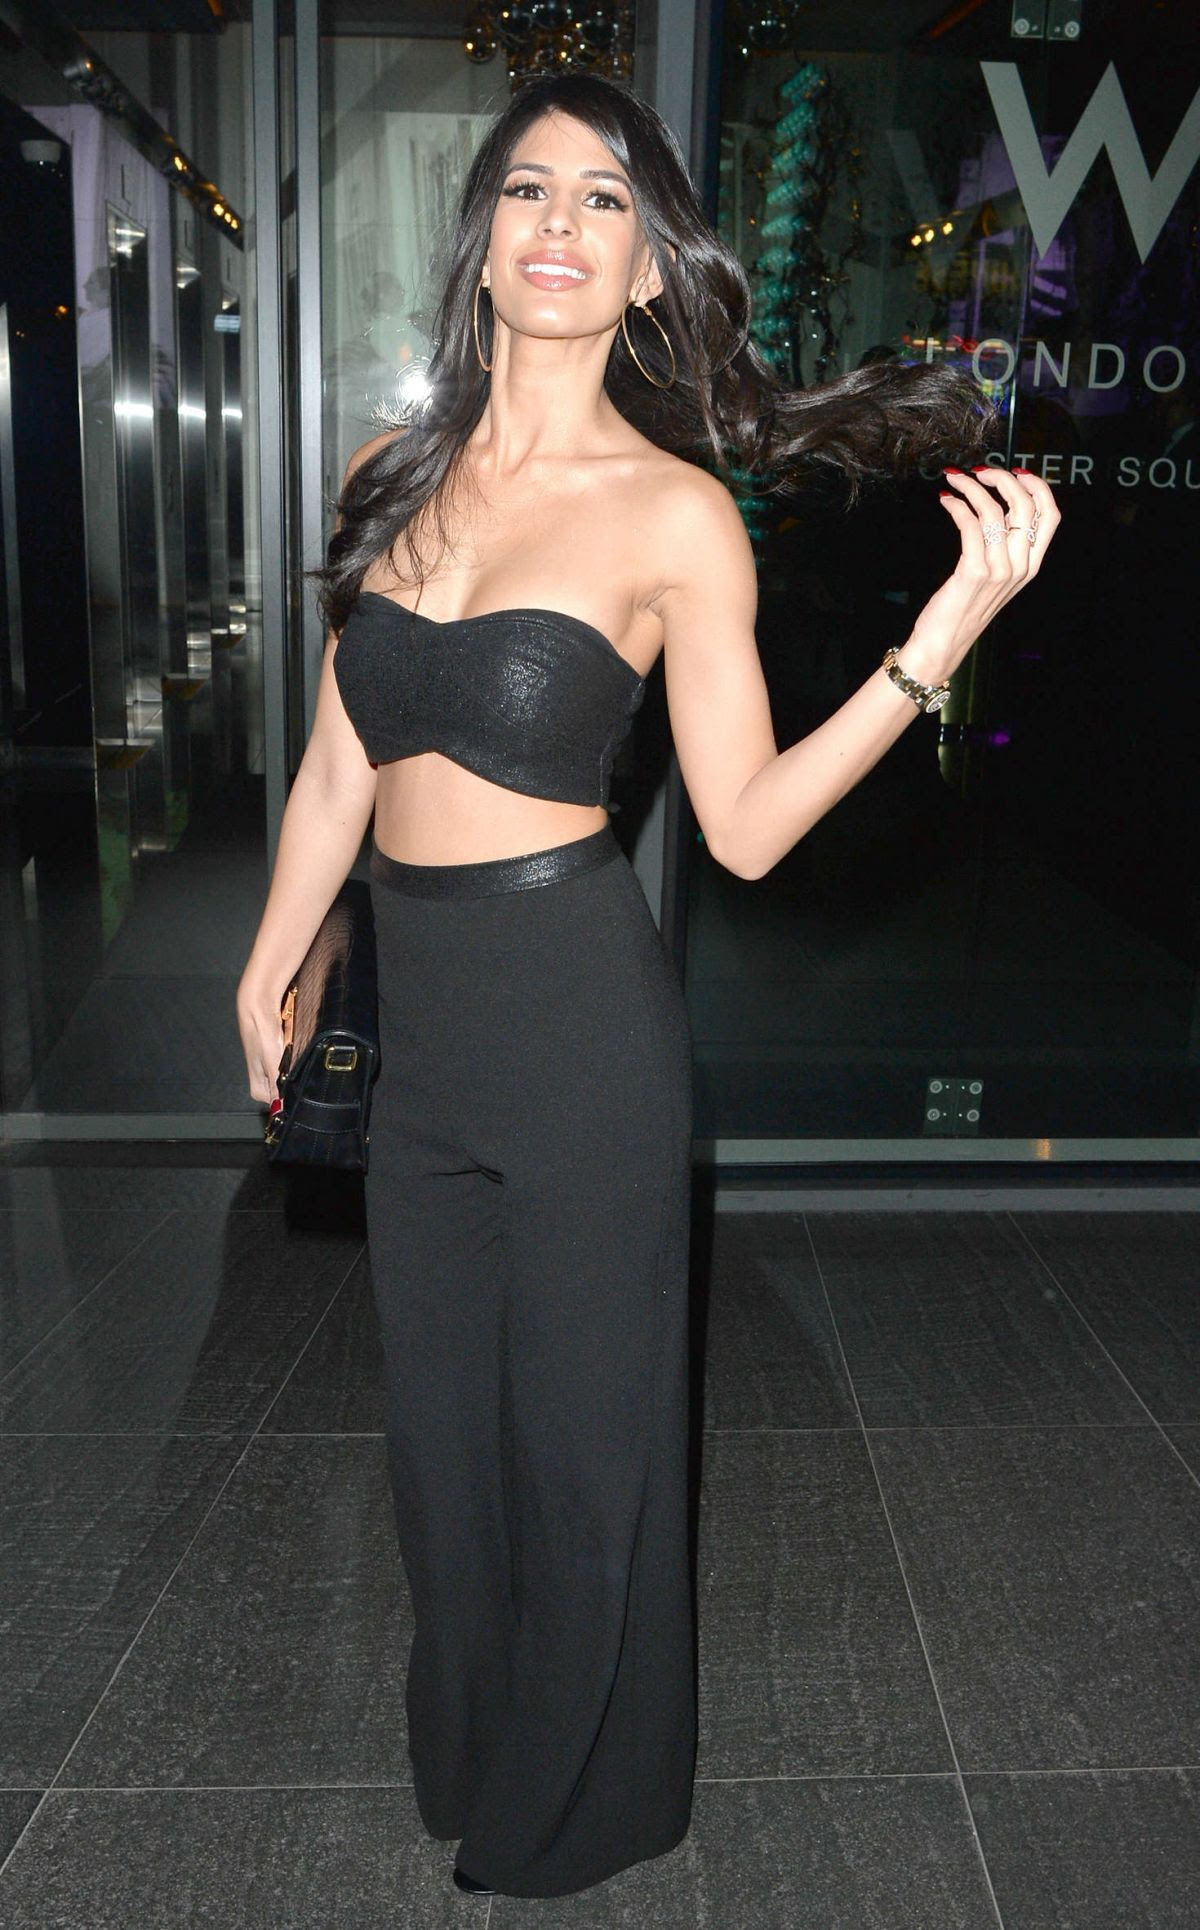 JASMIN WALIA at W Hotel in London 01/19/2016